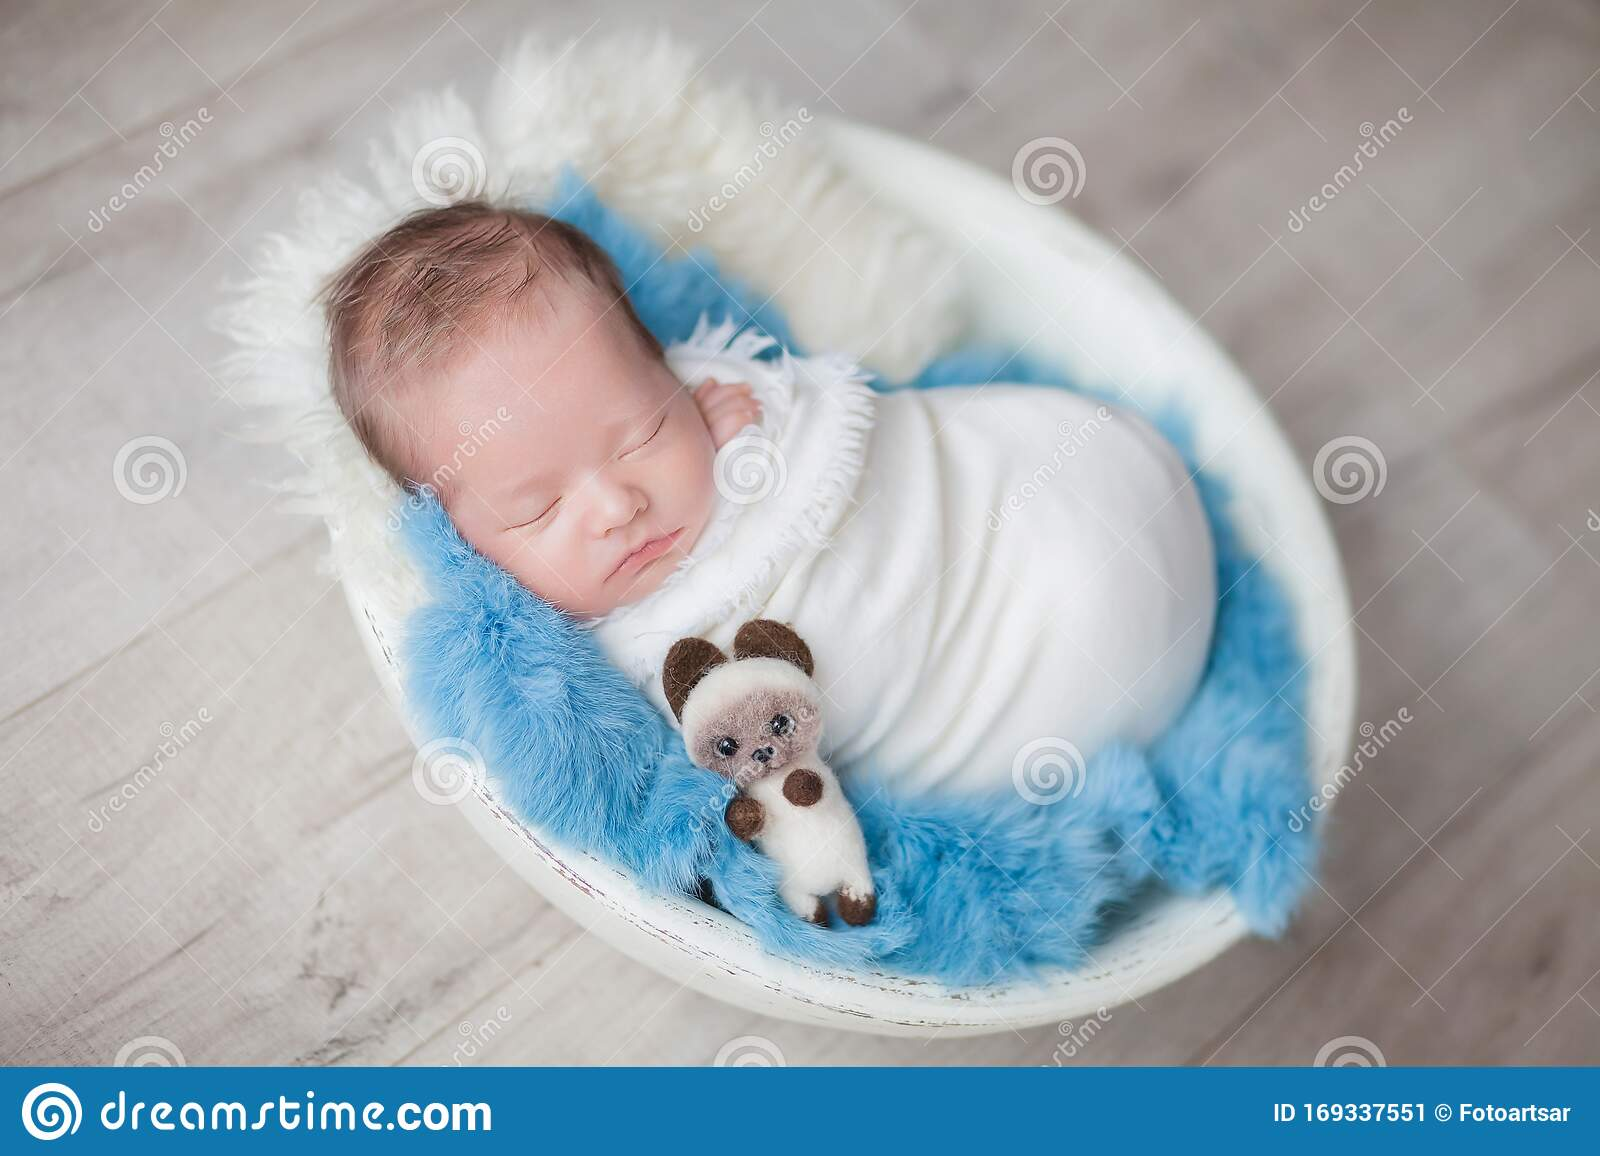 Picture of: Newborn Baby Boy In A Cocoon In A White Bowl On A Blue Rug Stock Image Image Of Sweet Newborn 169337551